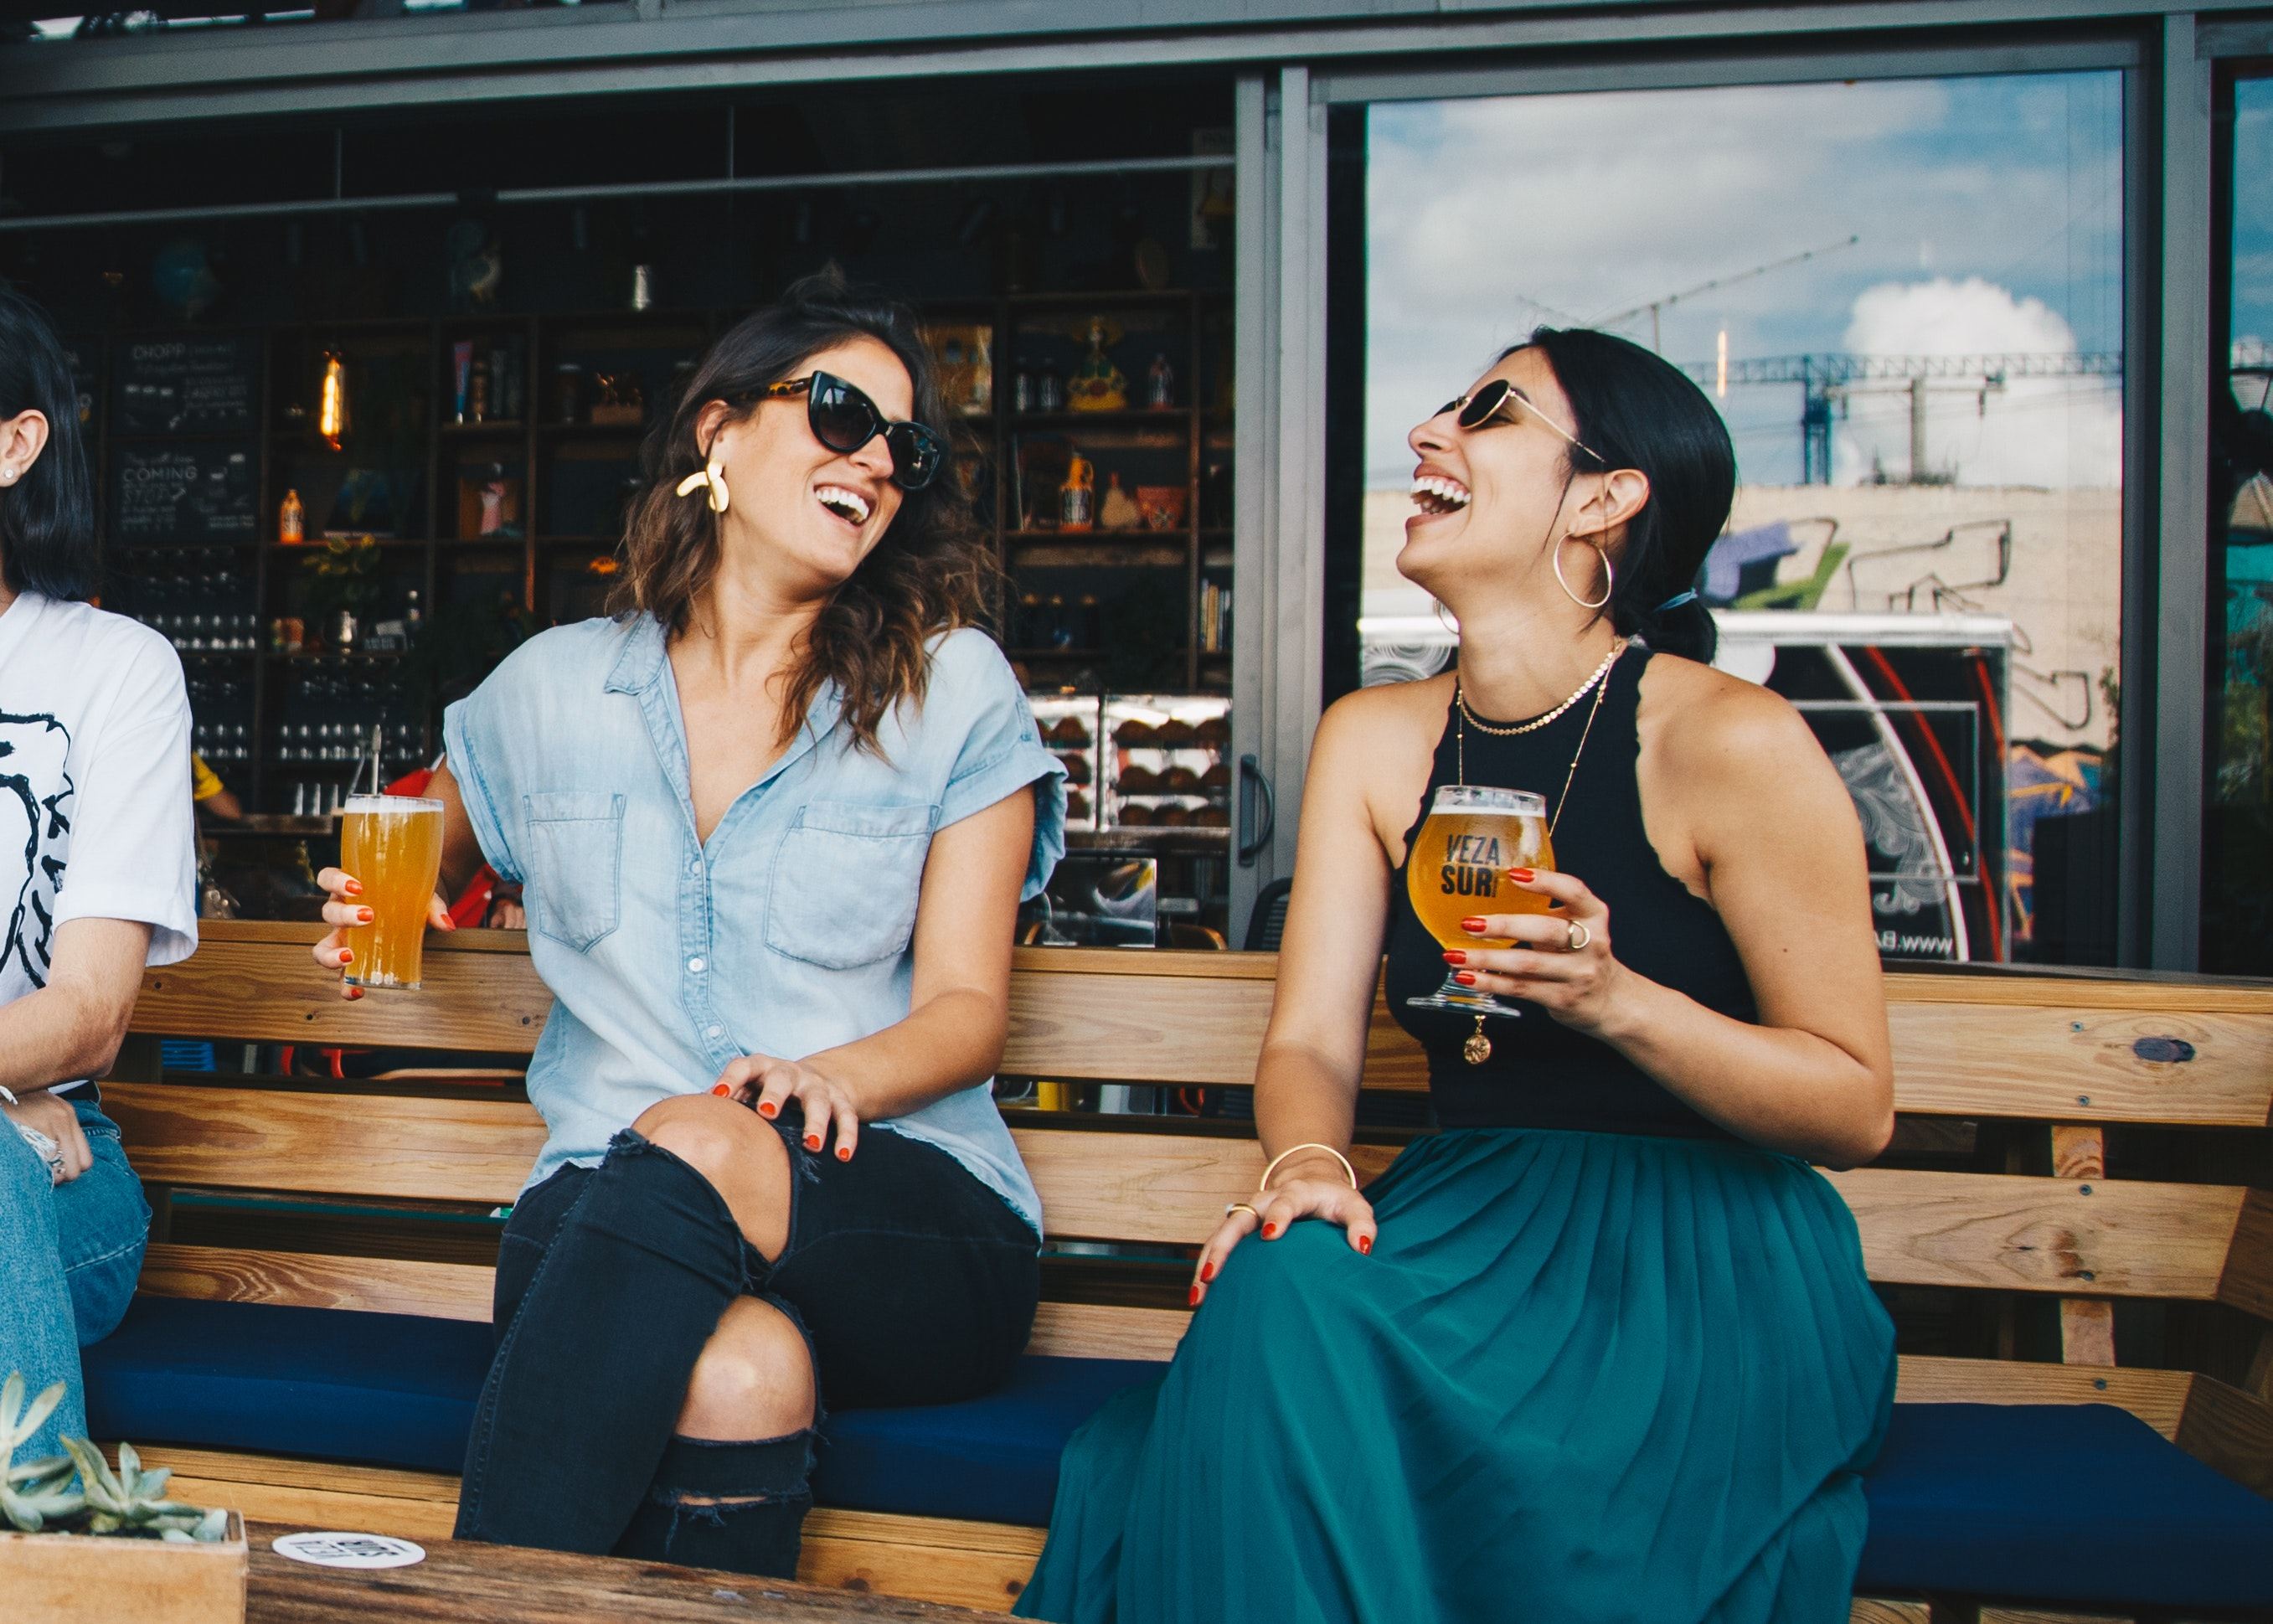 two women sitting on a patio with beers and laughing together how to be happy and healthy